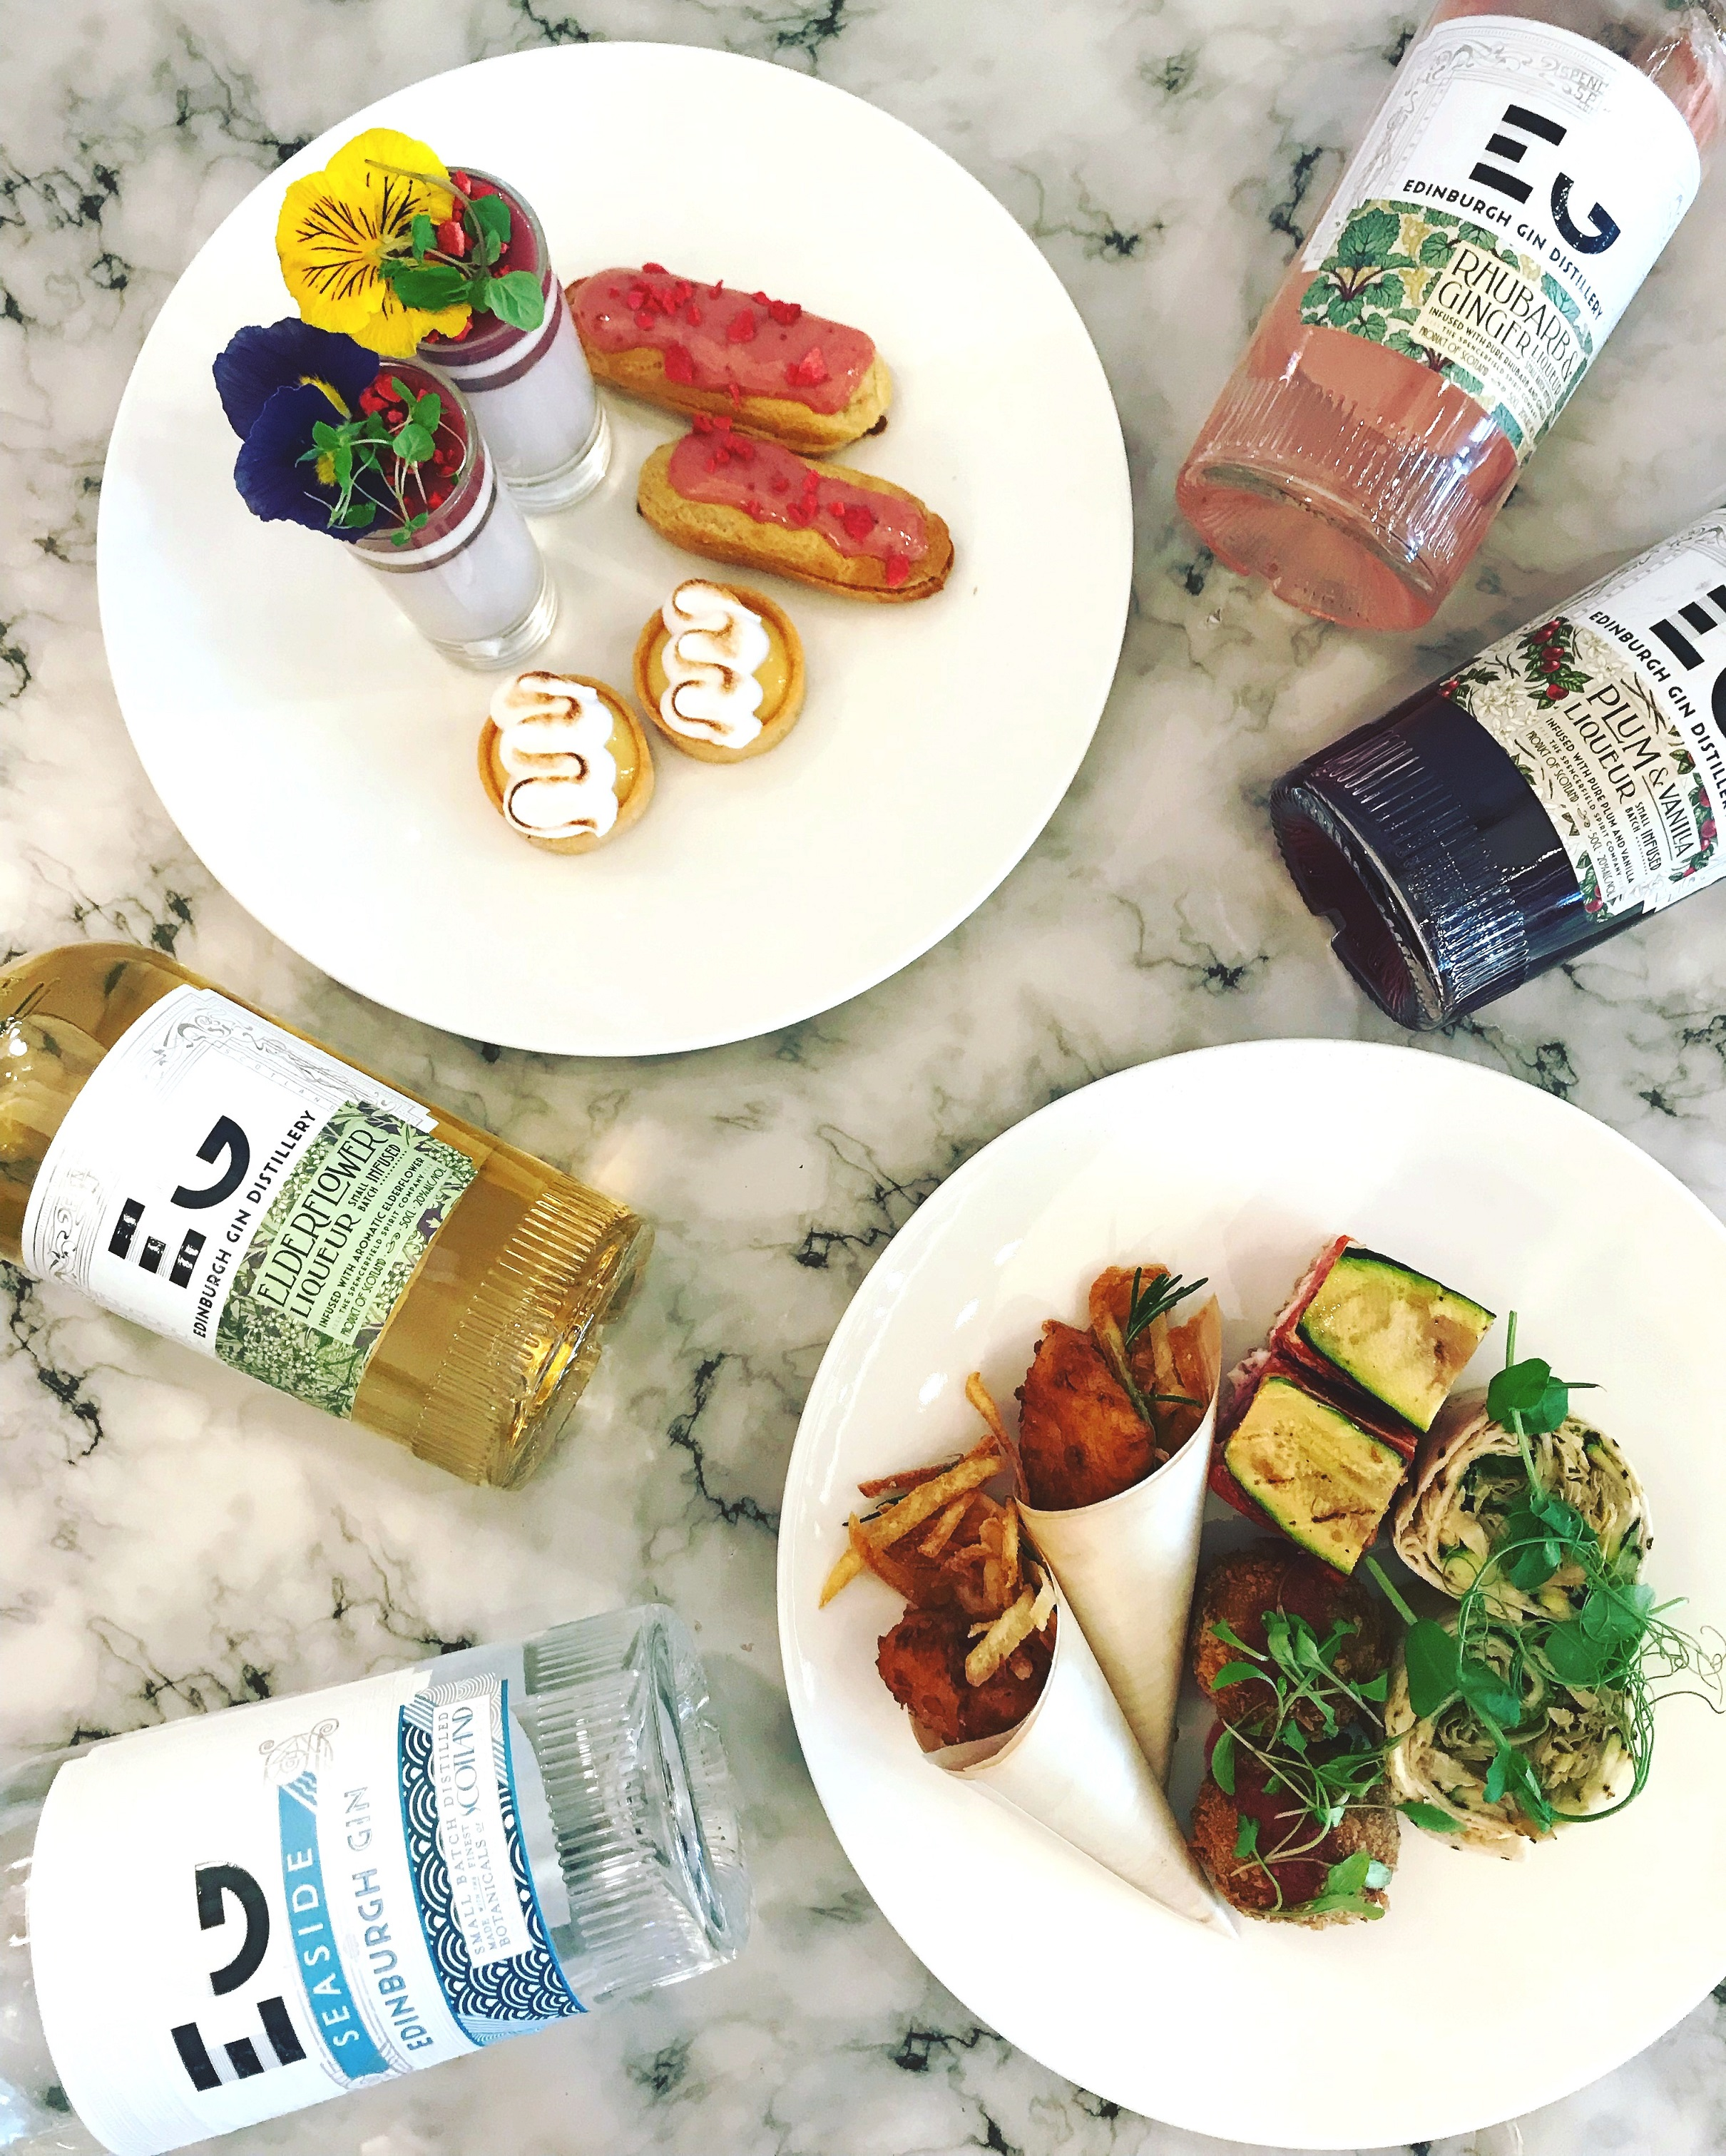 Indulge Your Tastebuds With Harvey Nichols And Edinburgh Gin